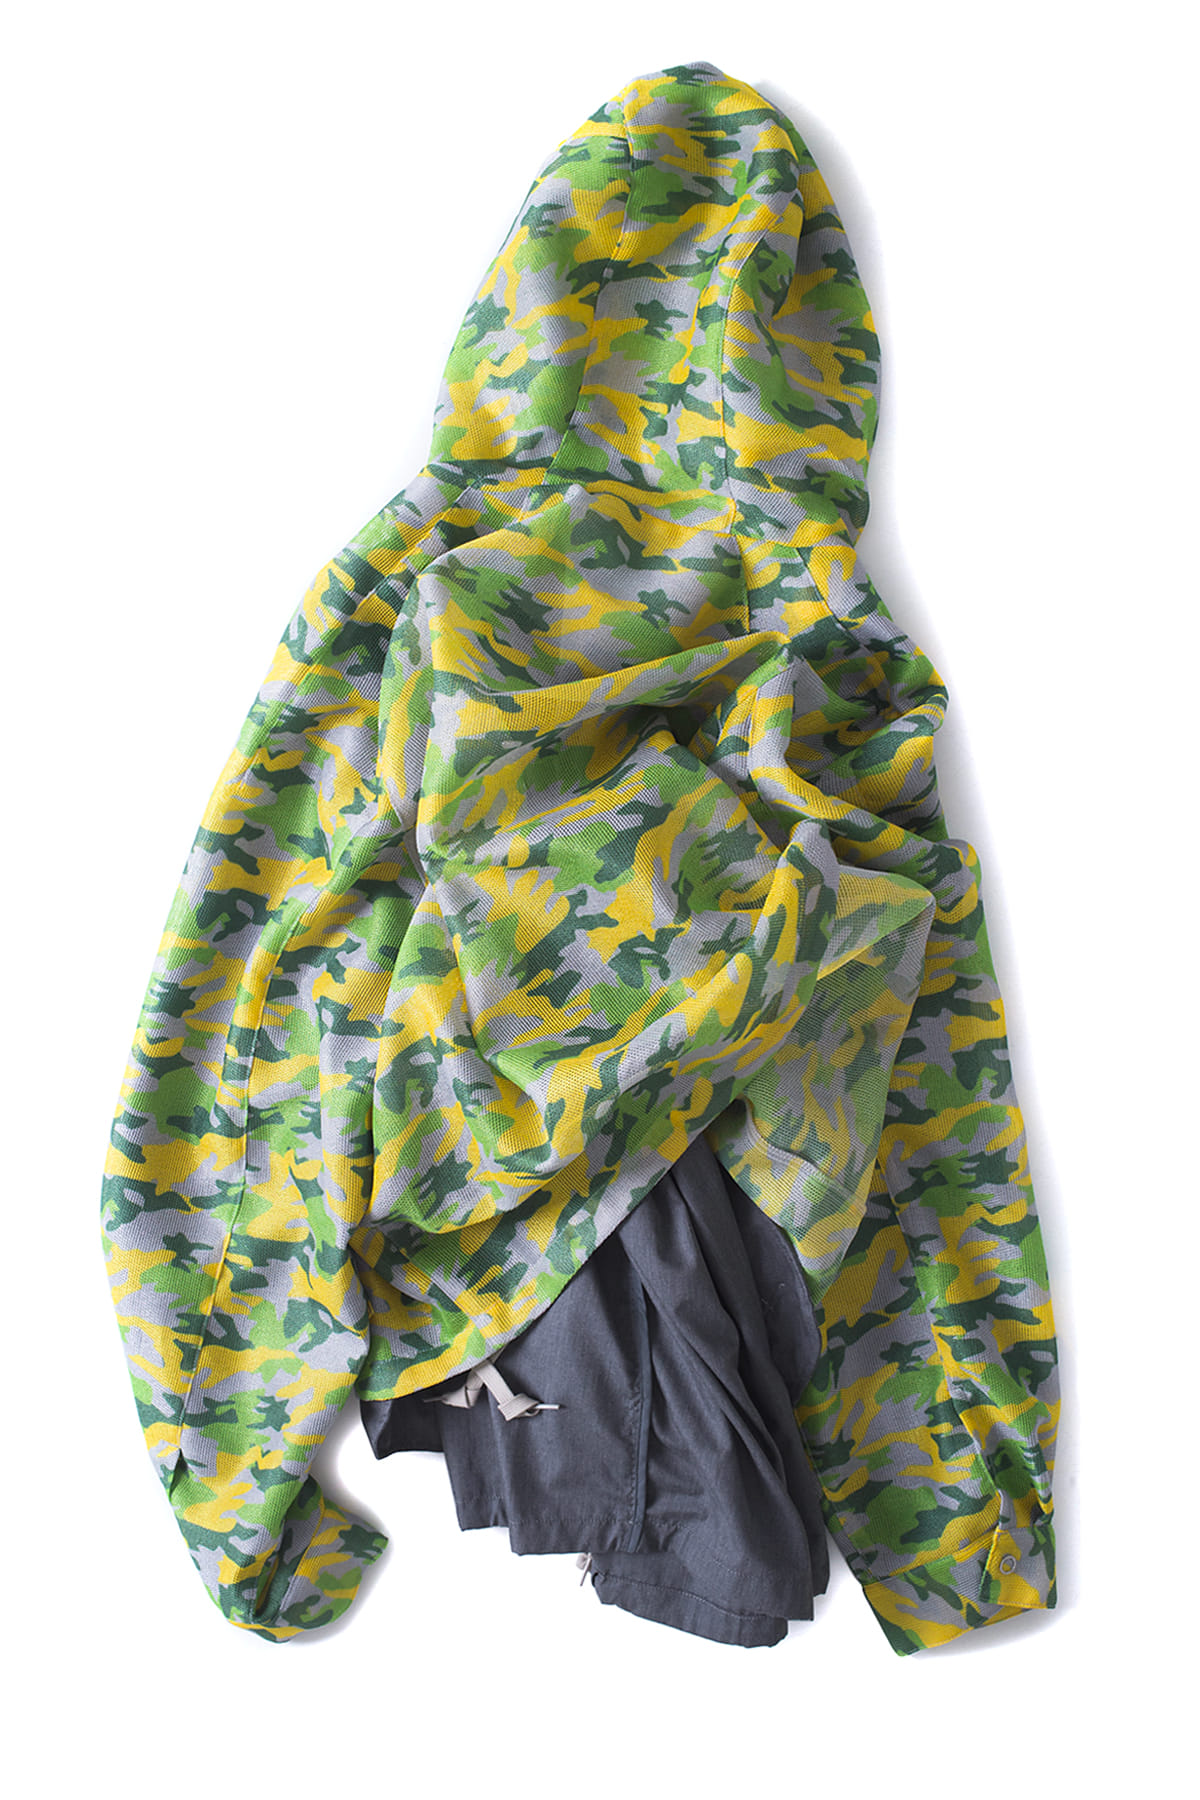 Name : Meshed Camo Hooded Blouson (Yellow)